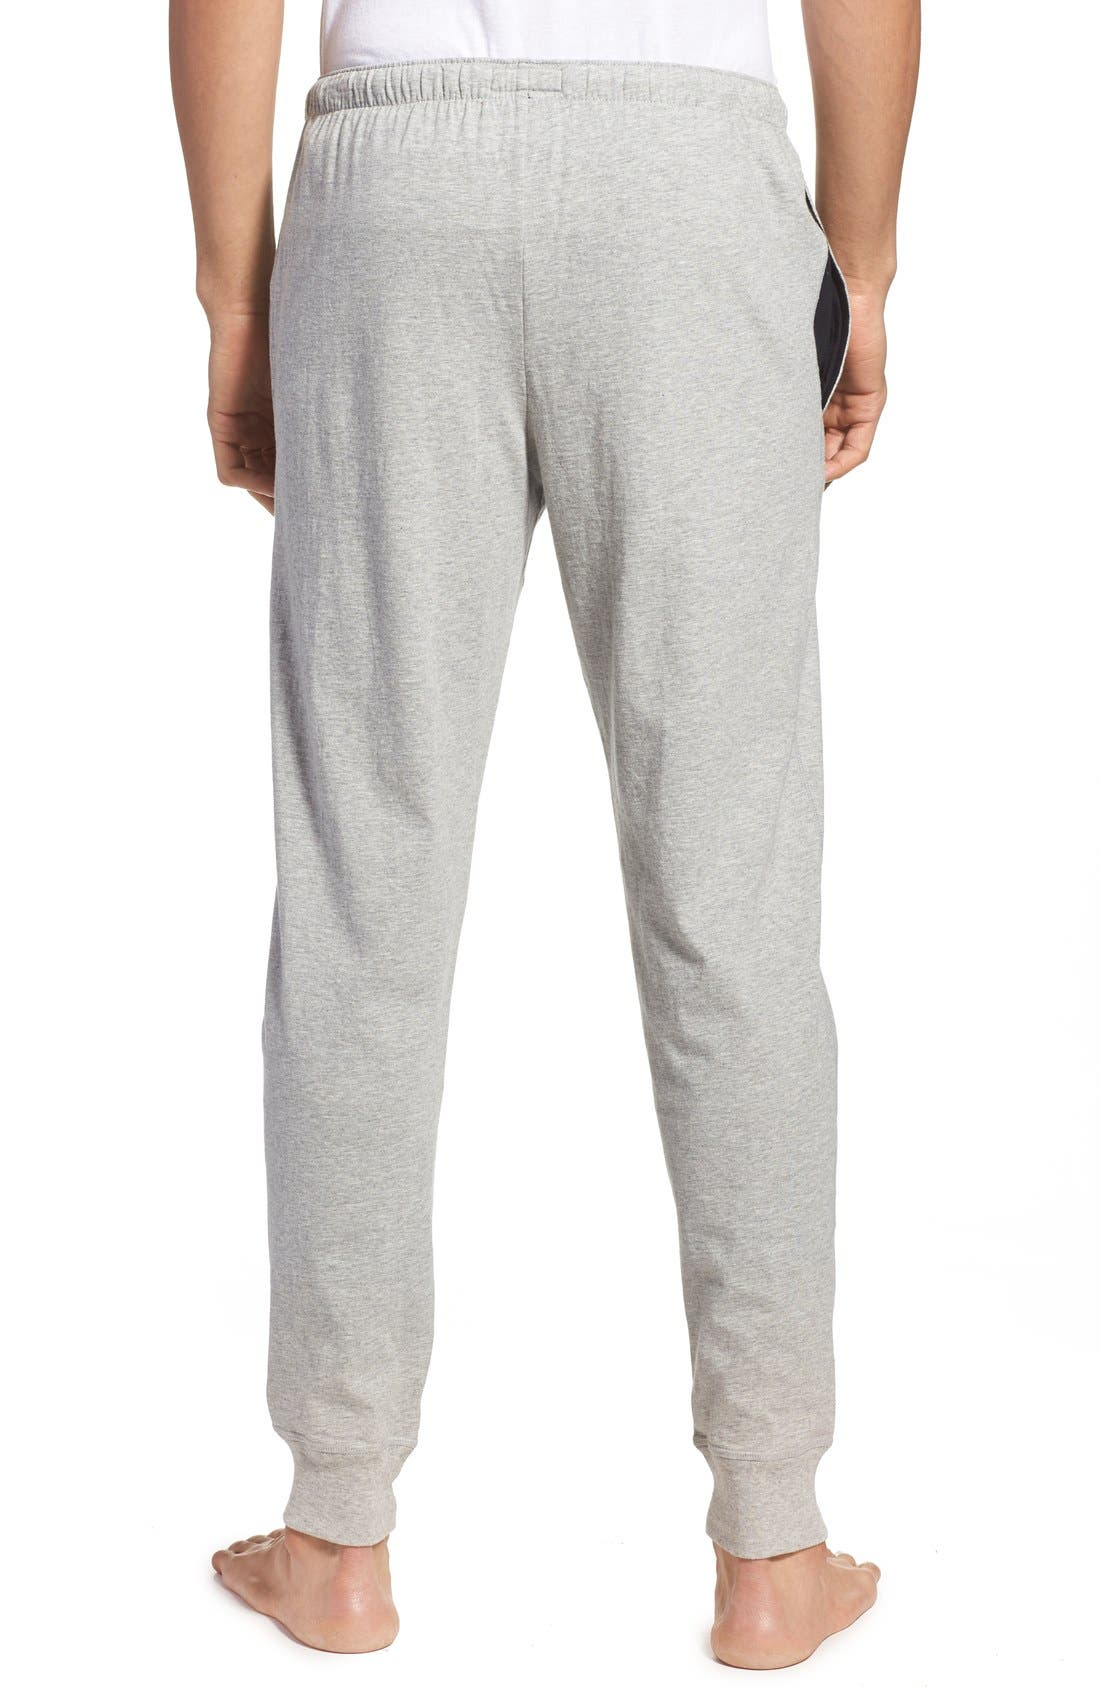 POLO RALPH LAUREN, Relaxed Fit Jogger Pants, Alternate thumbnail 4, color, ANDOVER HEATHER